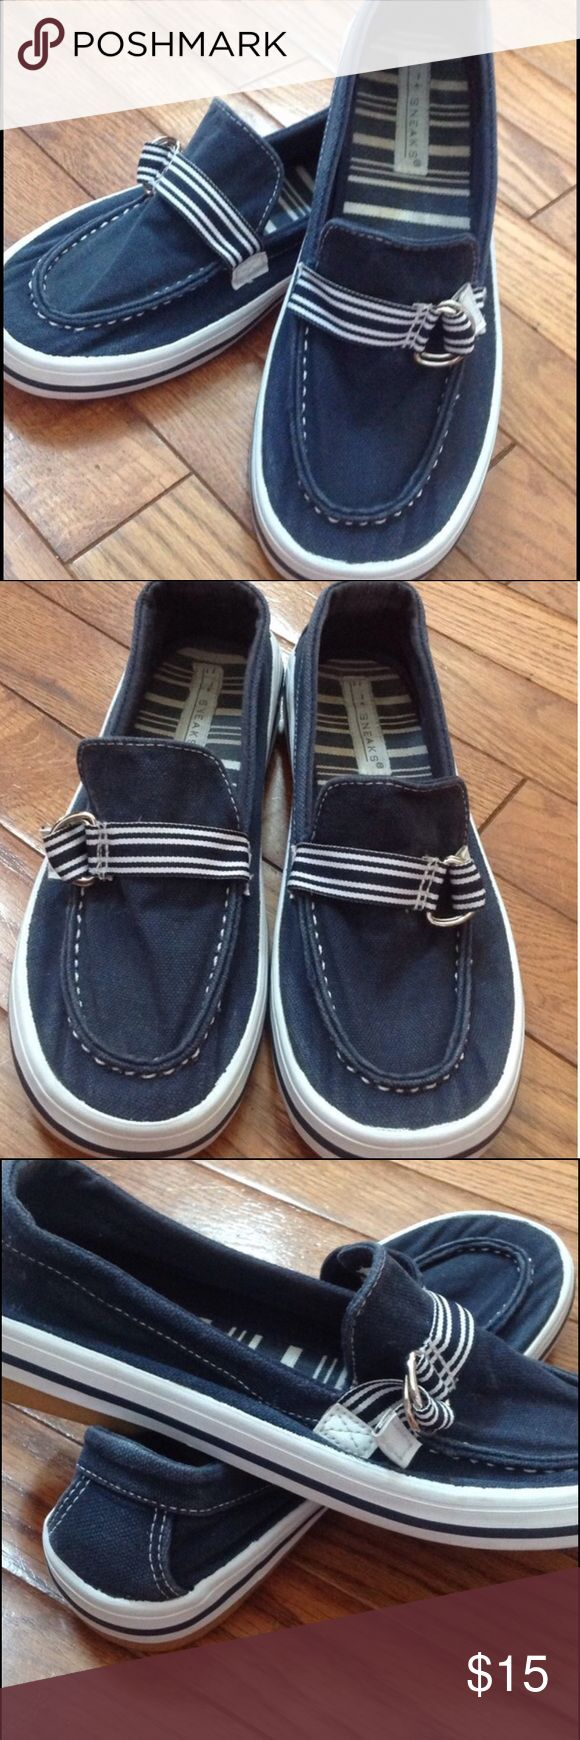 NAVY BLUE BOAT SHOES Navy and white boat shoes. Bought these on Posh and I truly love them but they are a little big on me. Comfy and cute shoes. Run true to size. I normally wear a 6 but was hoping they would work. Non smoking home. Sneaks Shoes